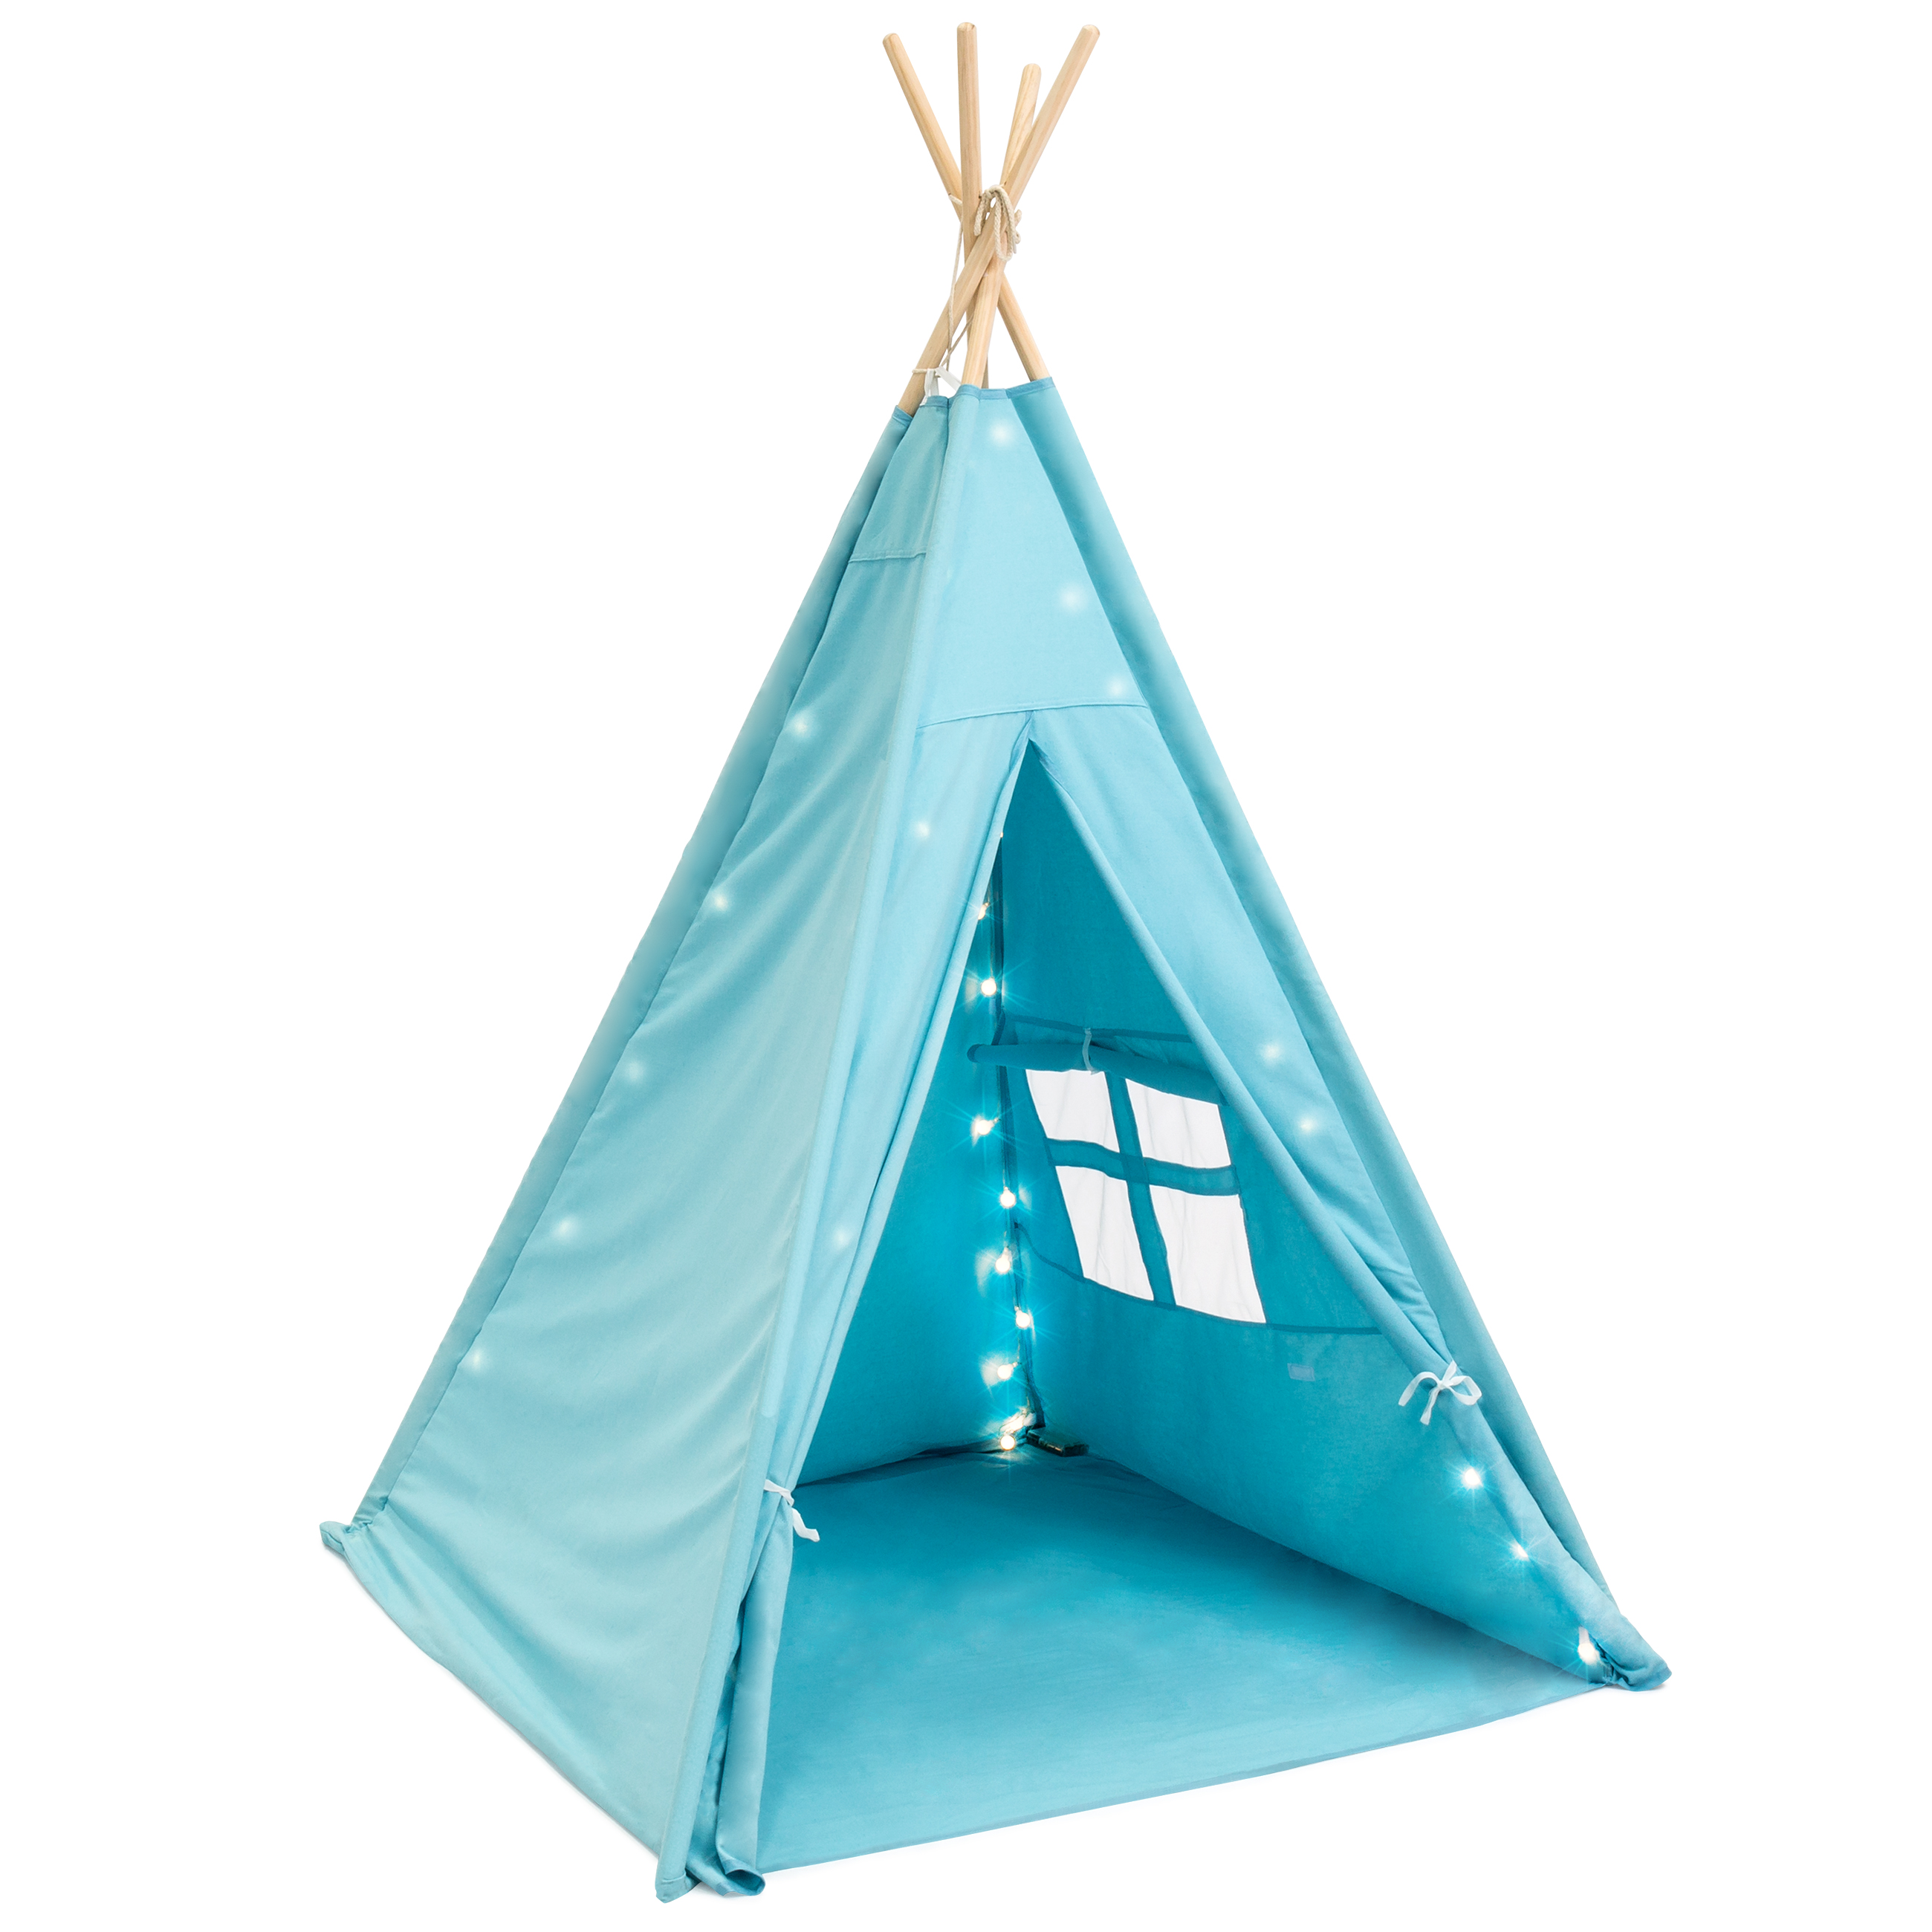 Best Choice Products 6FT Kids Light Up Teepee Play Tent w  Carry Case, Mat (Light Blue) by